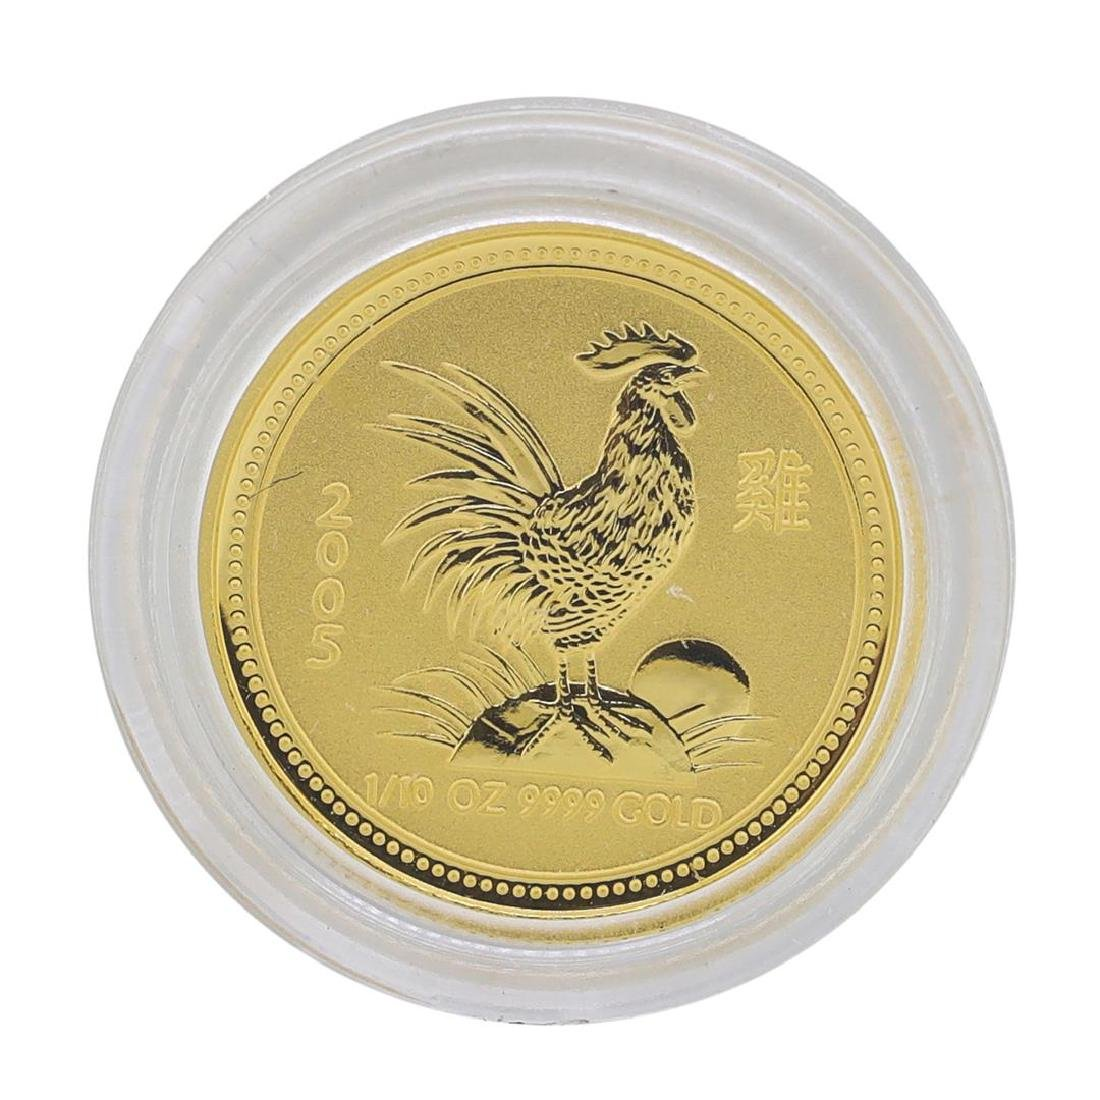 2005 $15 Australia Lunar Year of the Rooster 1/10 oz.